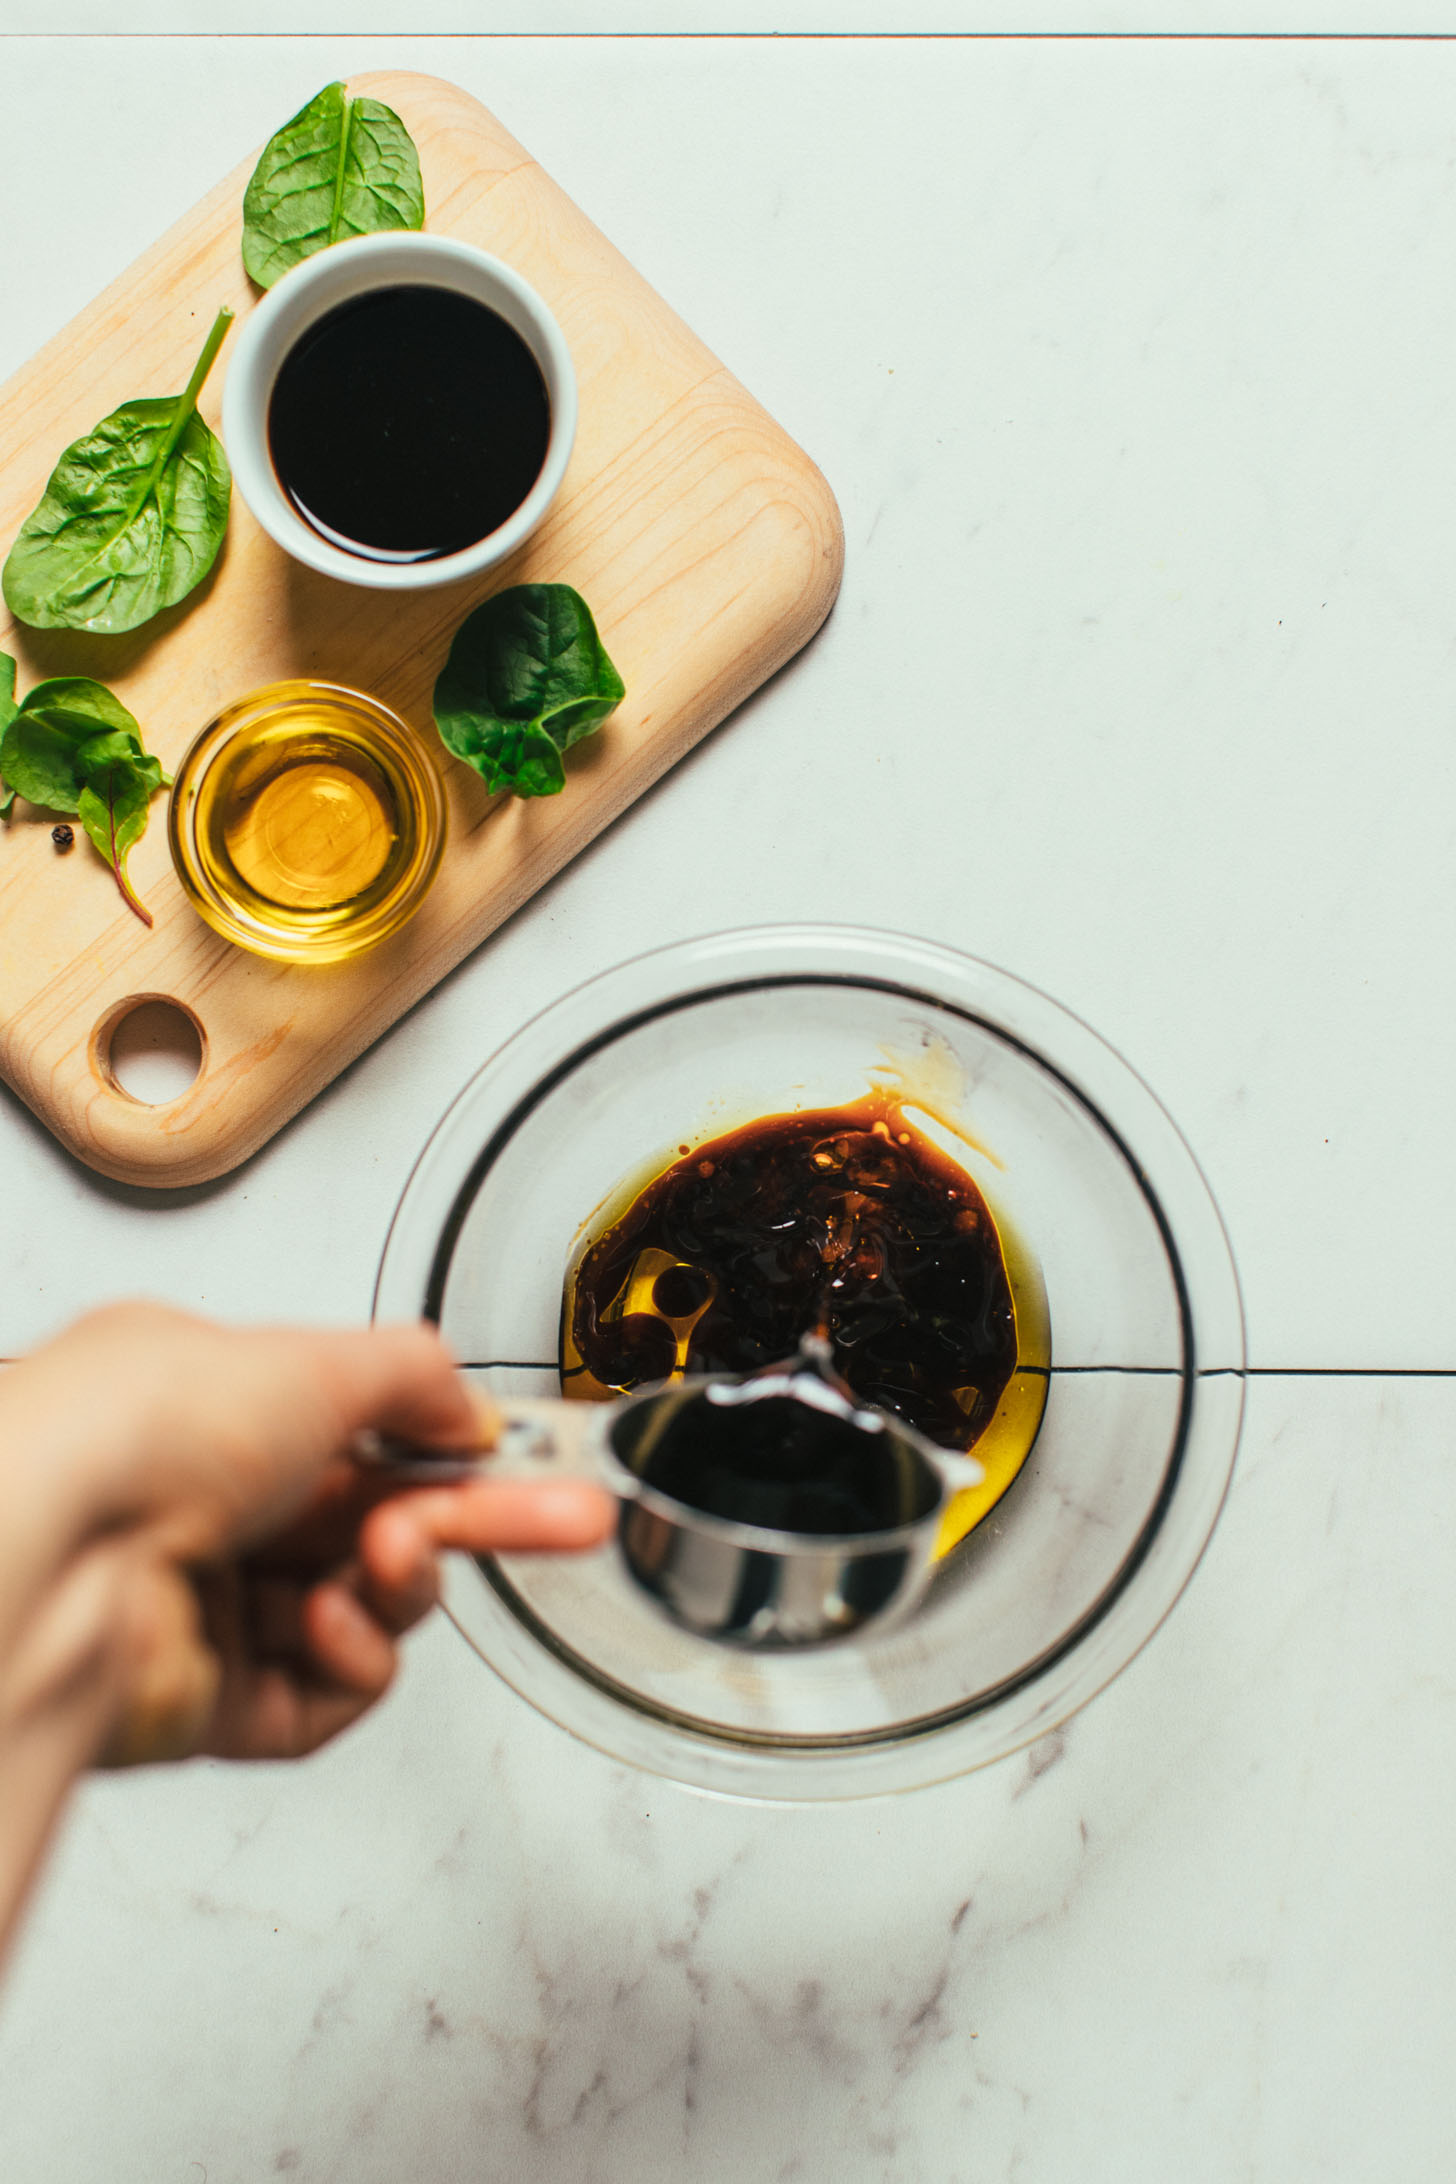 Pouring balsamic vinegar into a bowl for simple homemade dressing